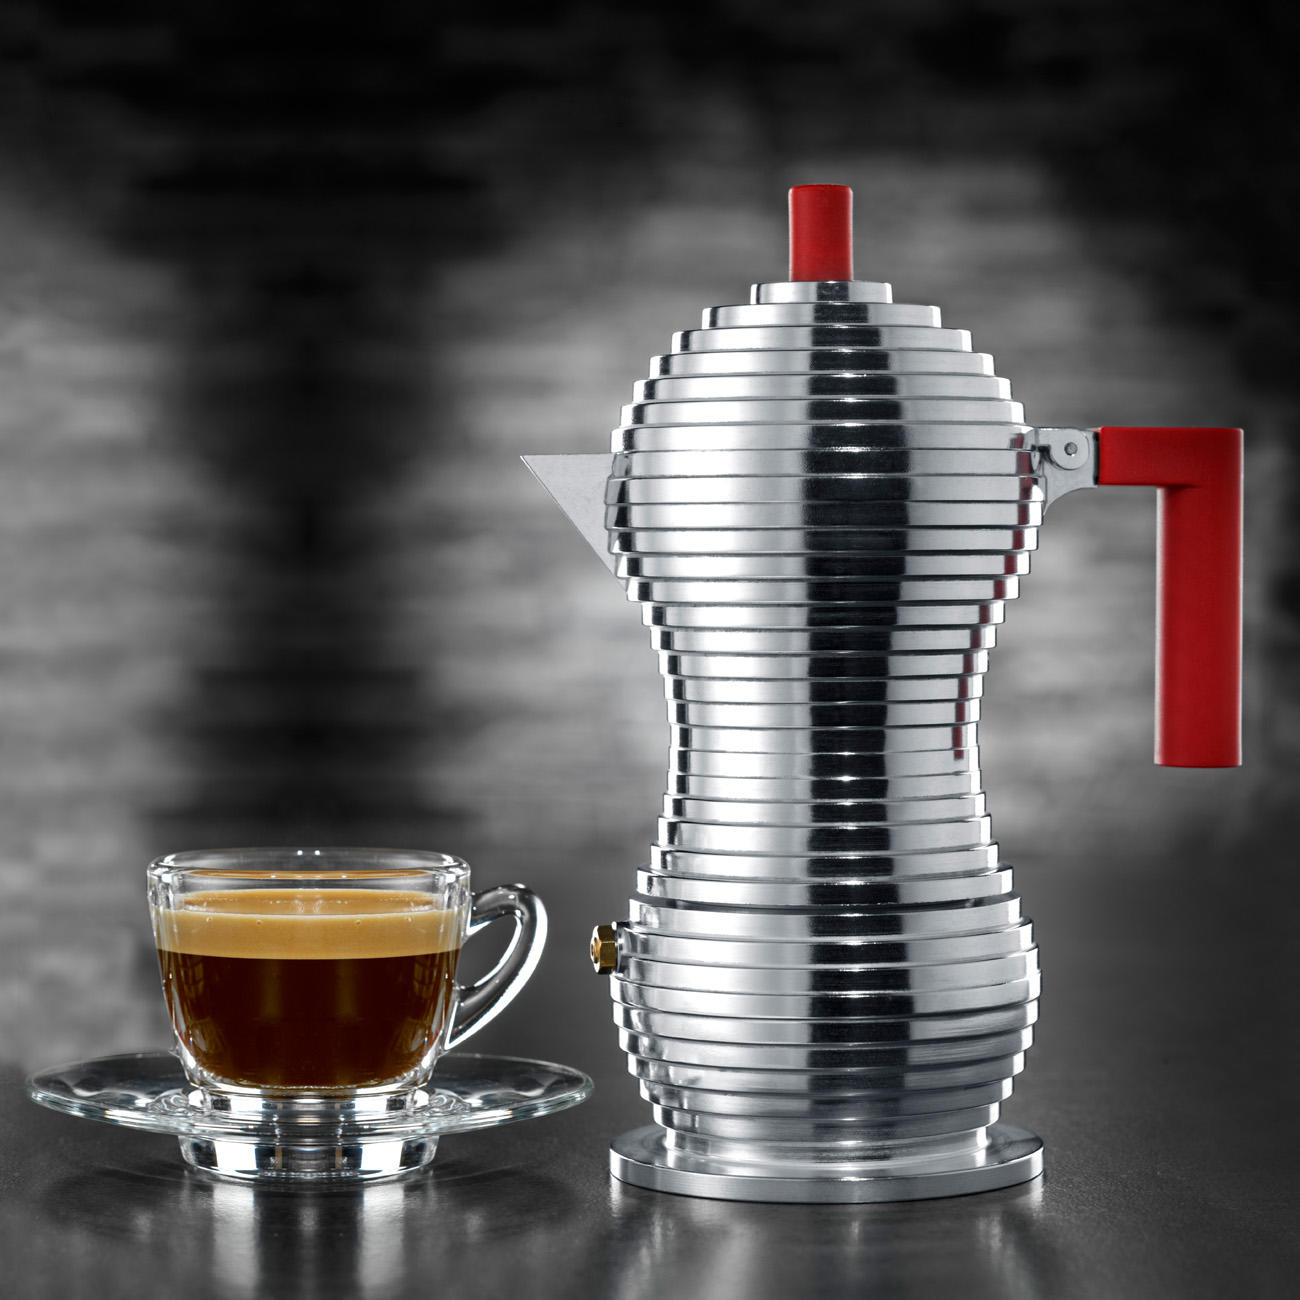 alessi espressokocher pulcina f r 1 tasse 70 ml aluminium rot 7 5 cm durchmesser 16 5 cm h. Black Bedroom Furniture Sets. Home Design Ideas